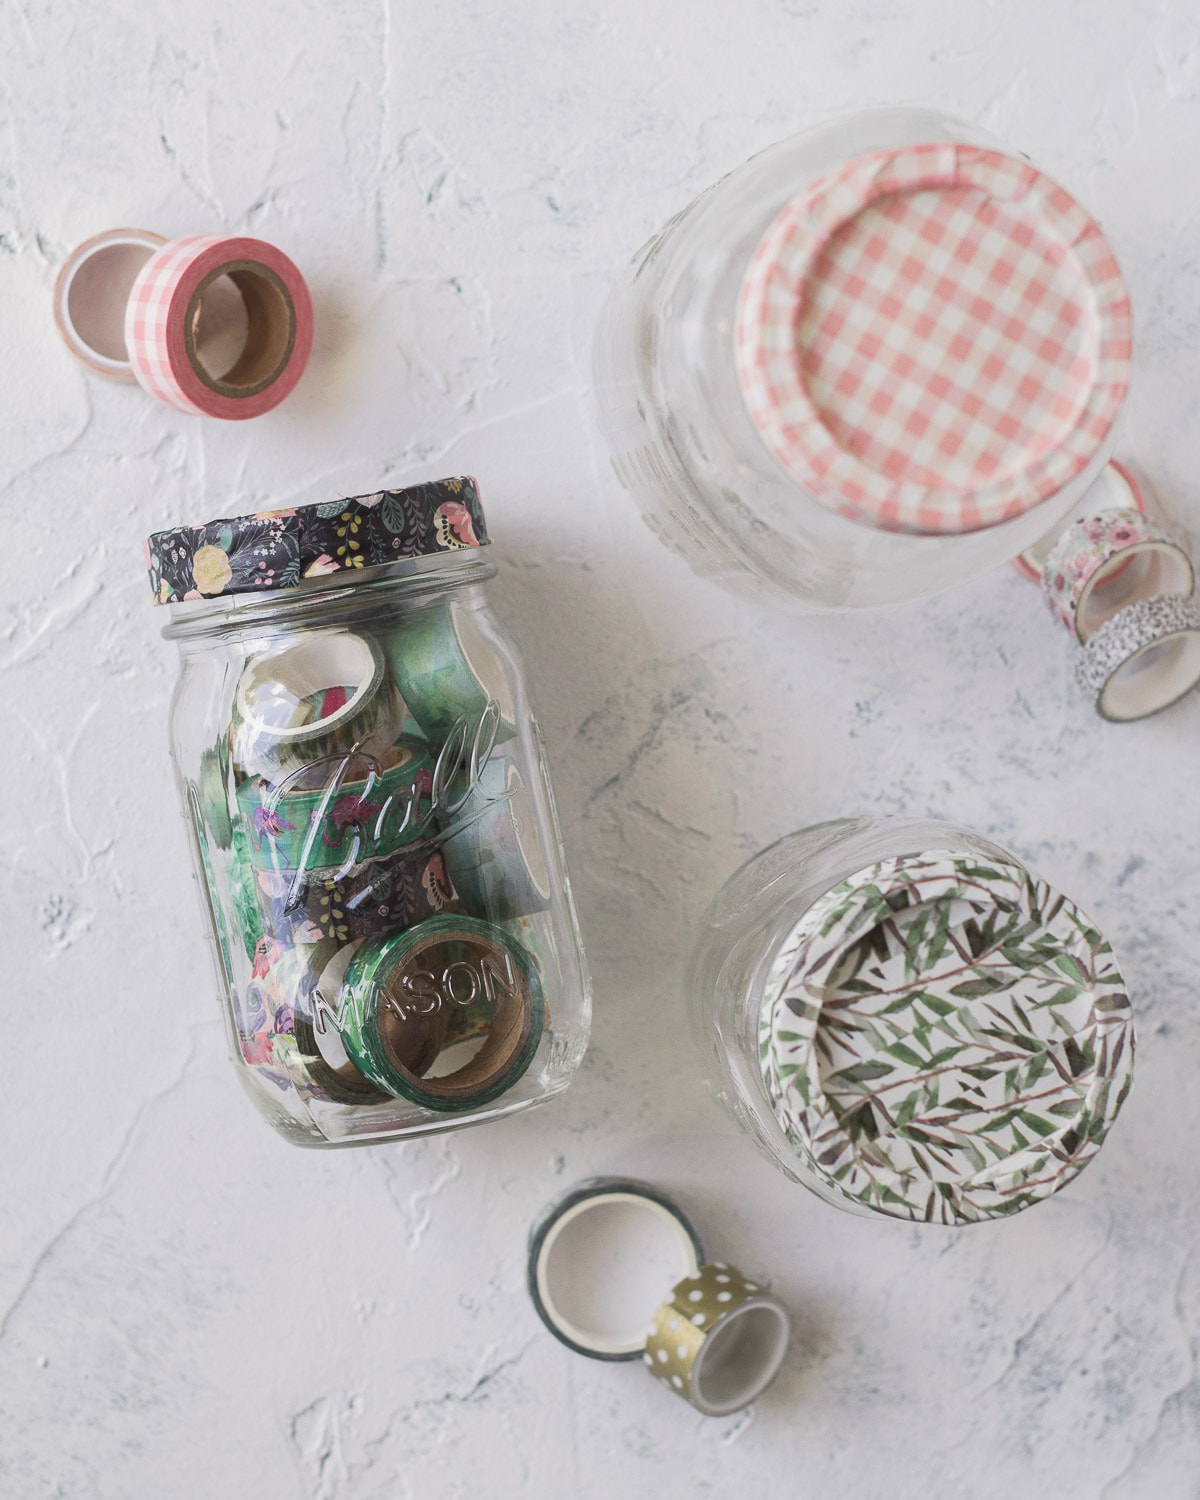 Mason jars filled and covered with washi tape.